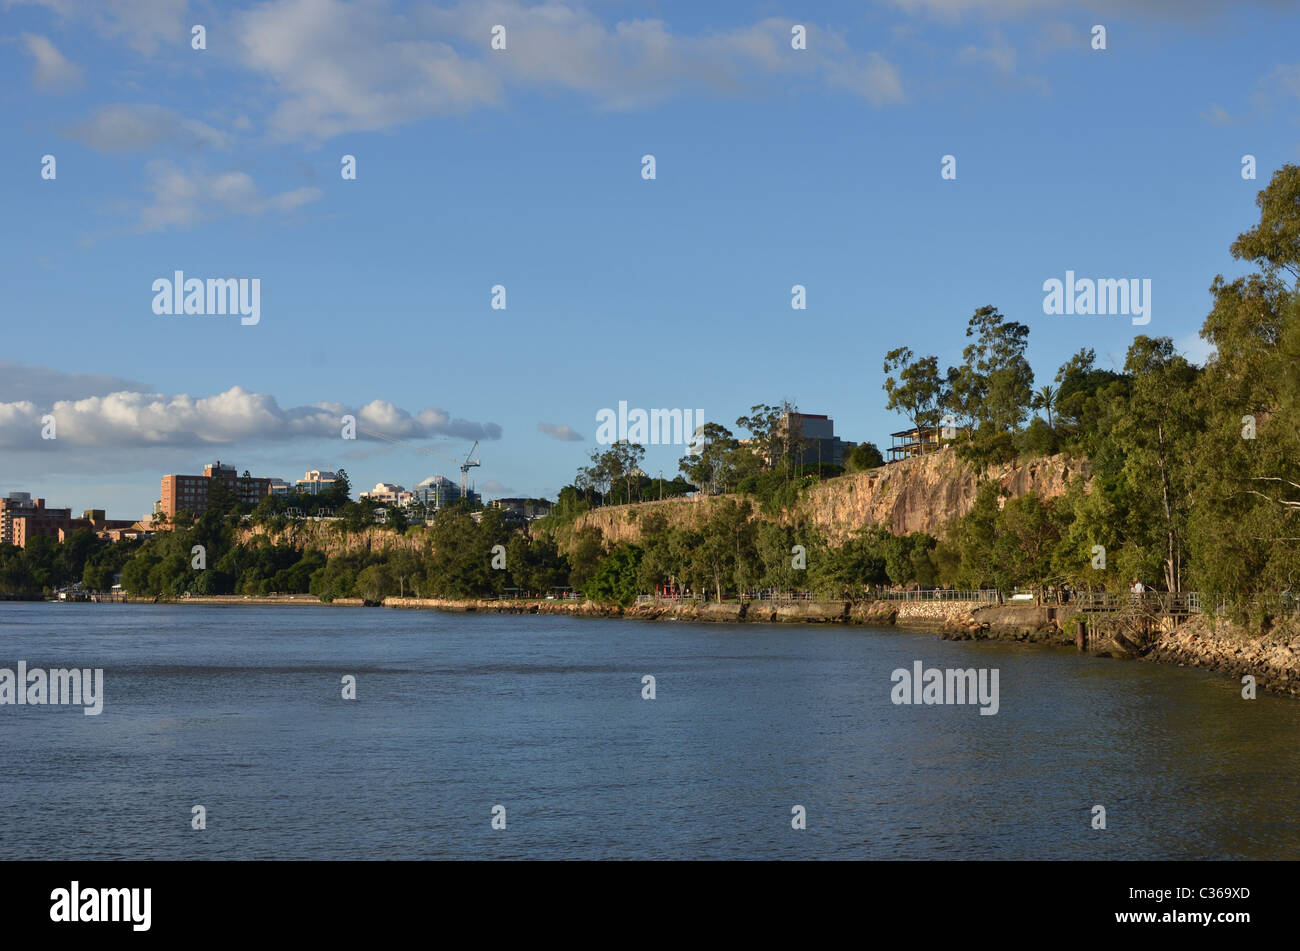 Kangaroo Point Cliffs in Brisbane, with the Brisbane River in the foreground. - Stock Image